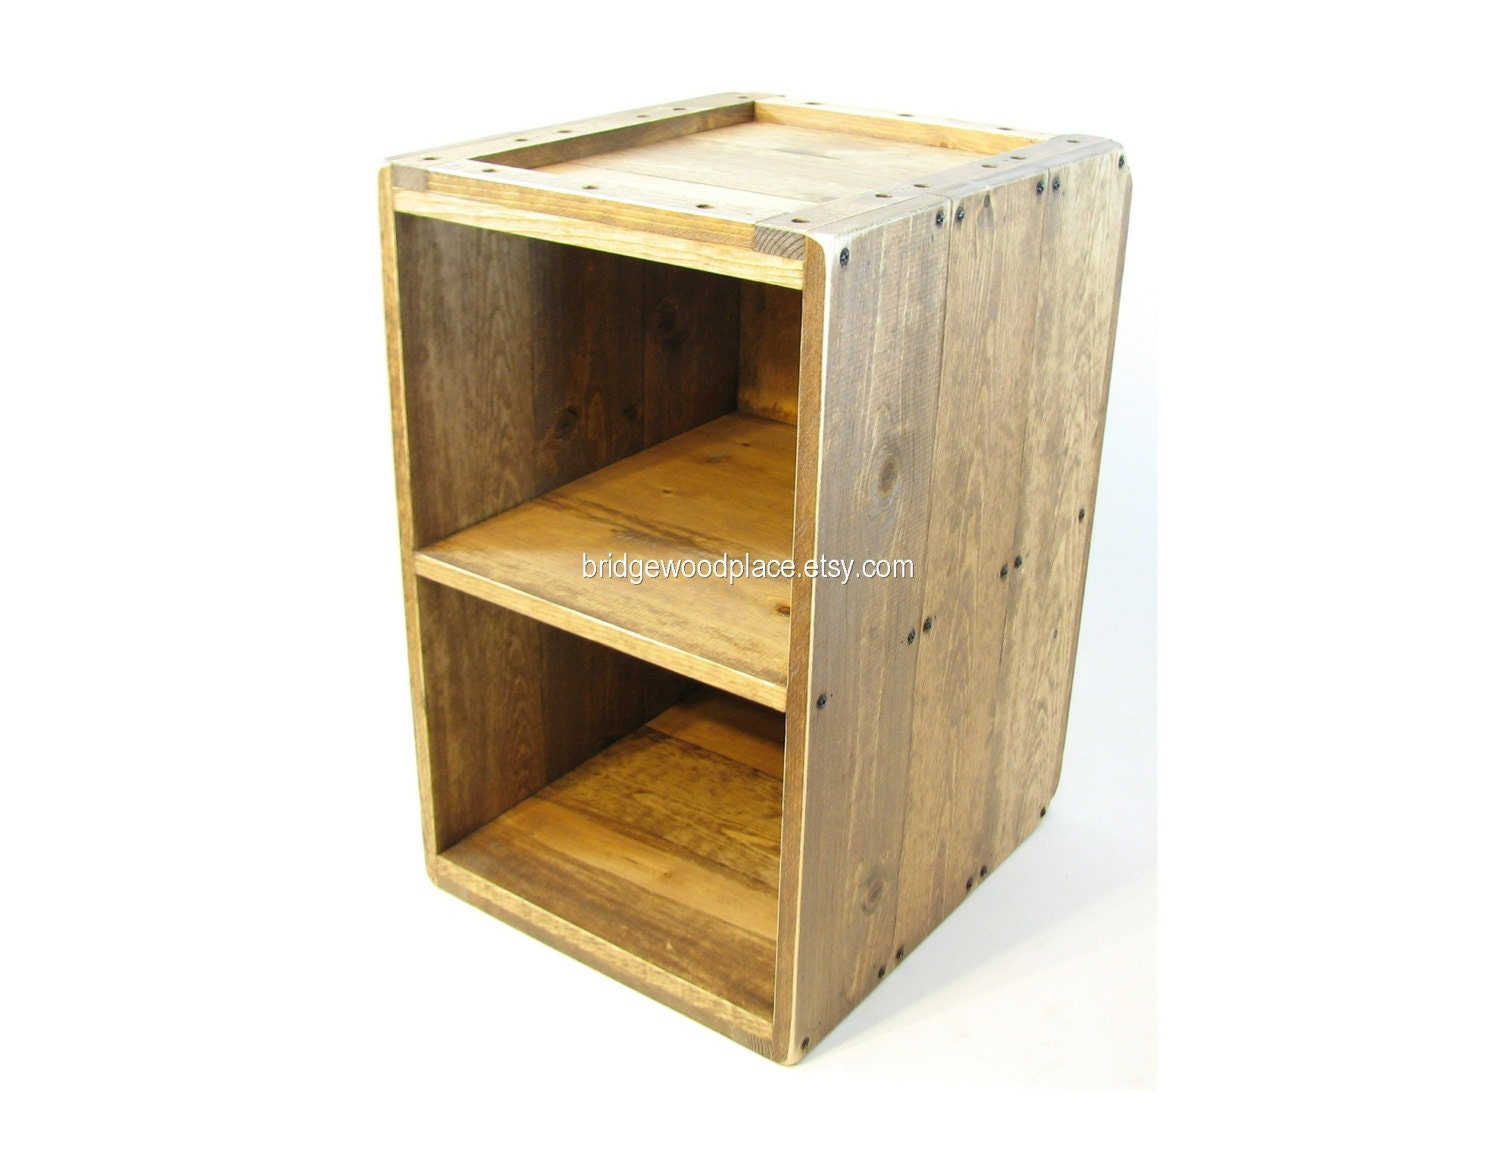 Wood crate table furniture side table rustic by bridgewoodplace Wooden crates furniture